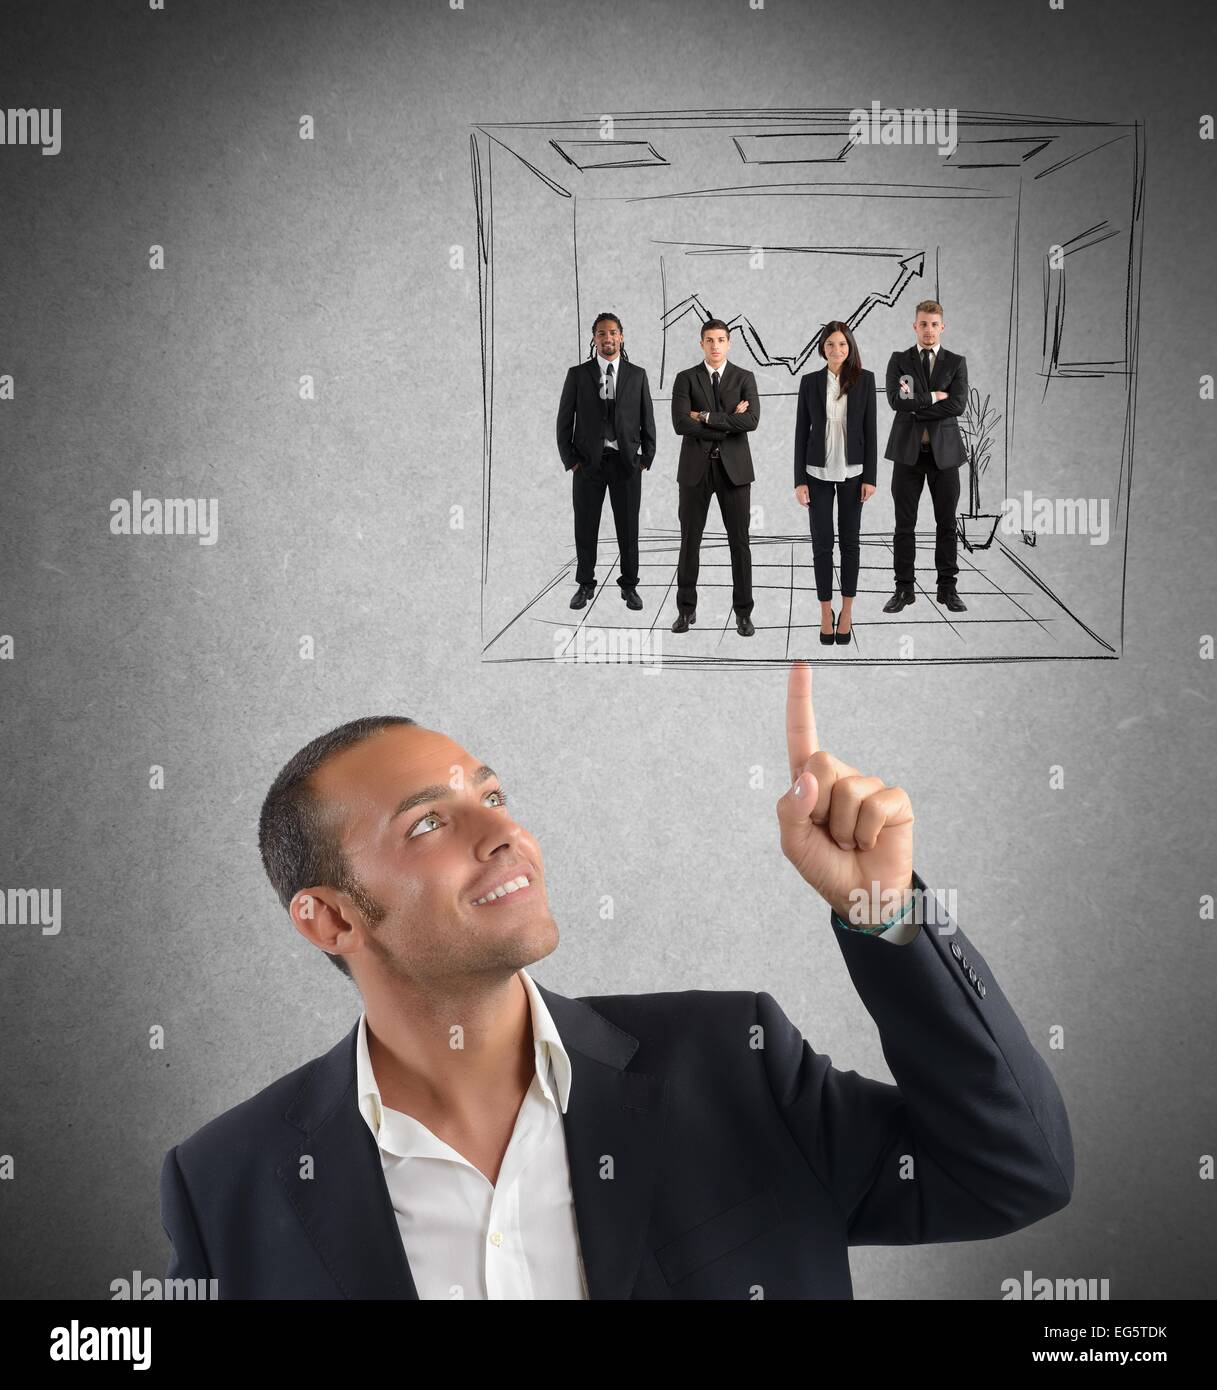 Executive operates with simplicity - Stock Image